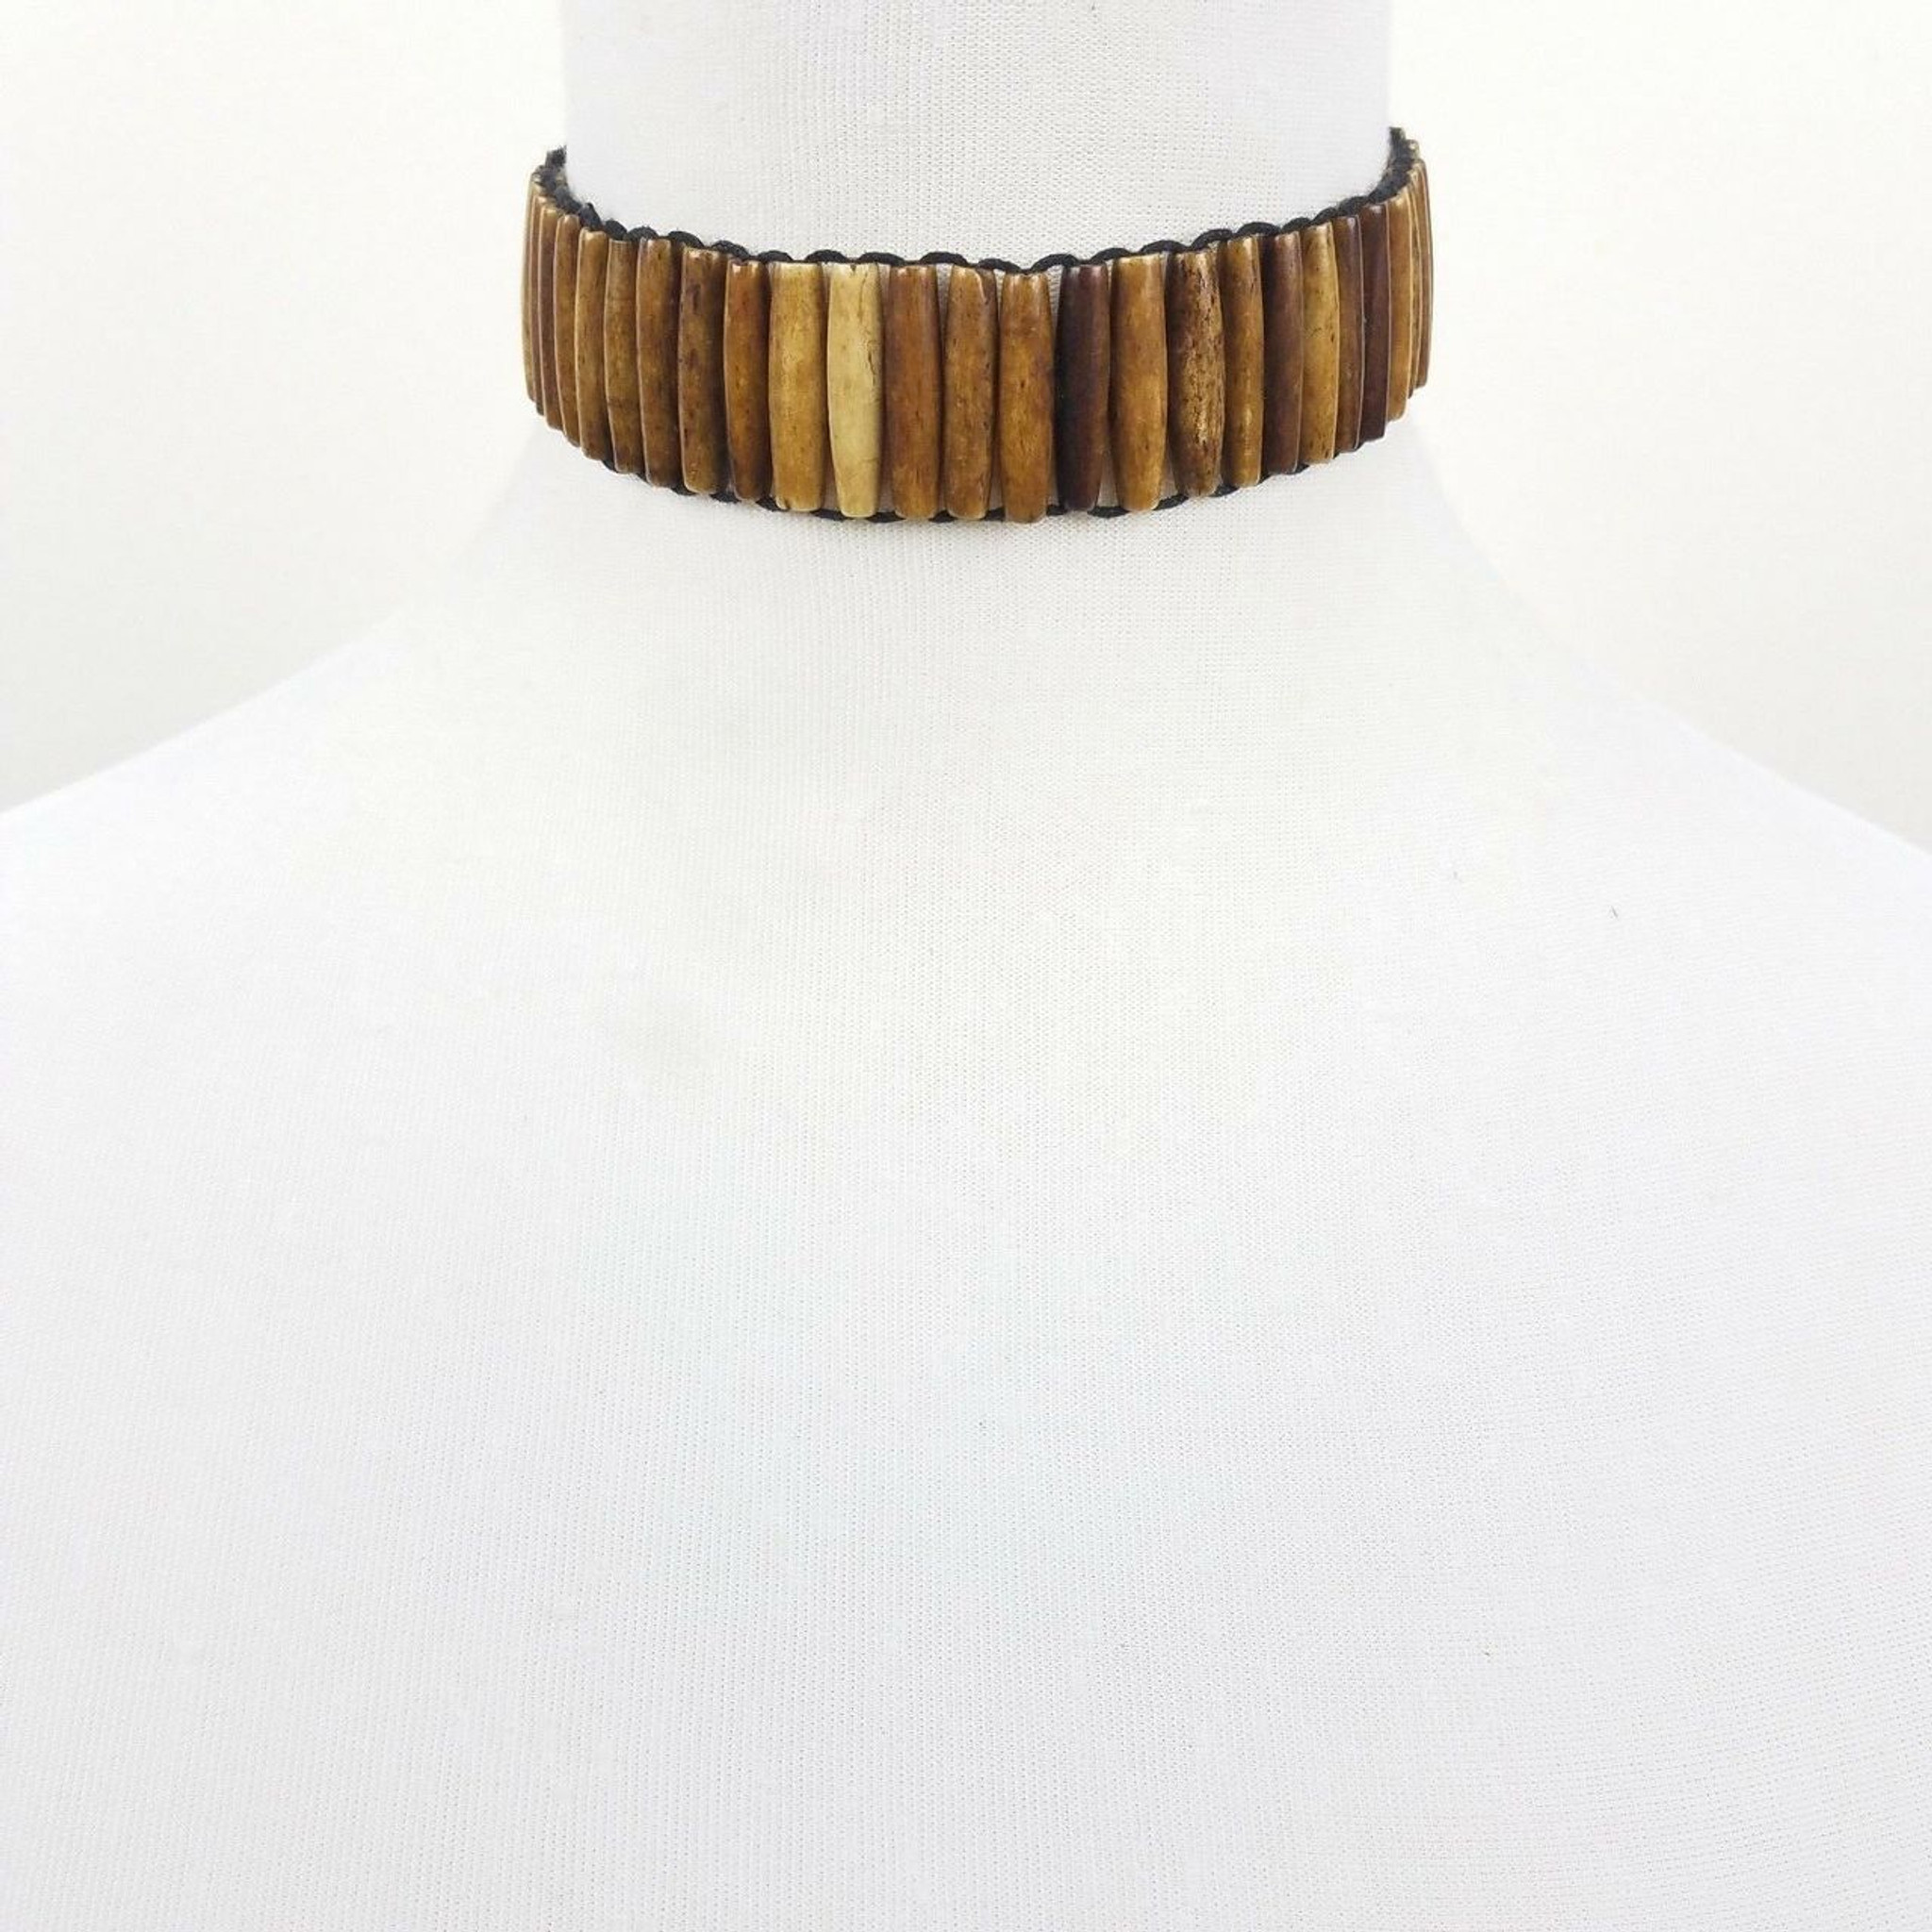 Buffalo Bone Choker Jewelry Necklace Plain Hair Pipe Bead Regalia Pow Wow Tribal